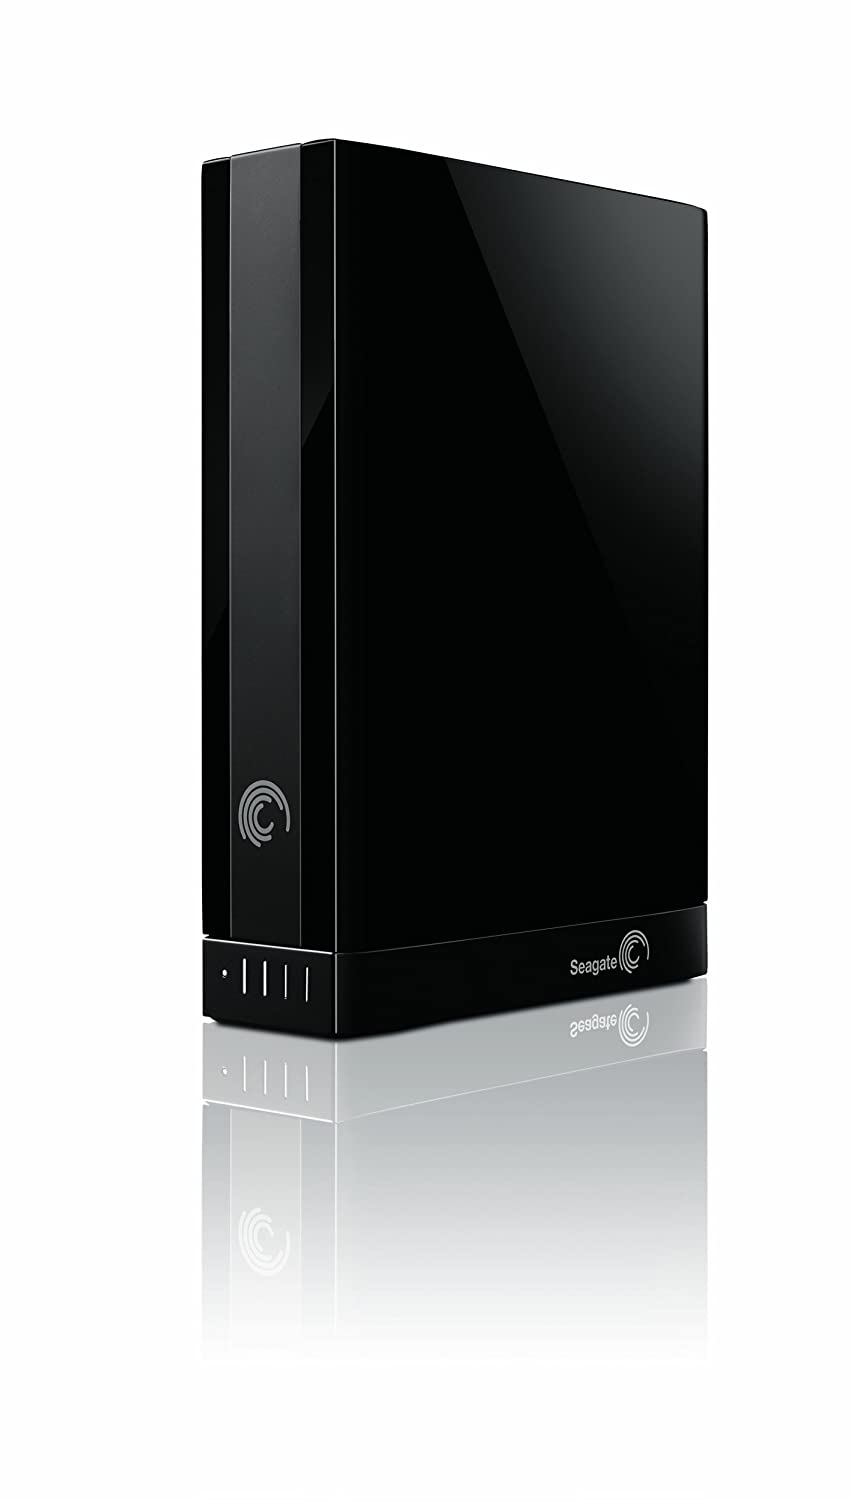 Seagate Backup Plus 3 TB USB 3.0 Desktop External Hard Drive ($99.99)